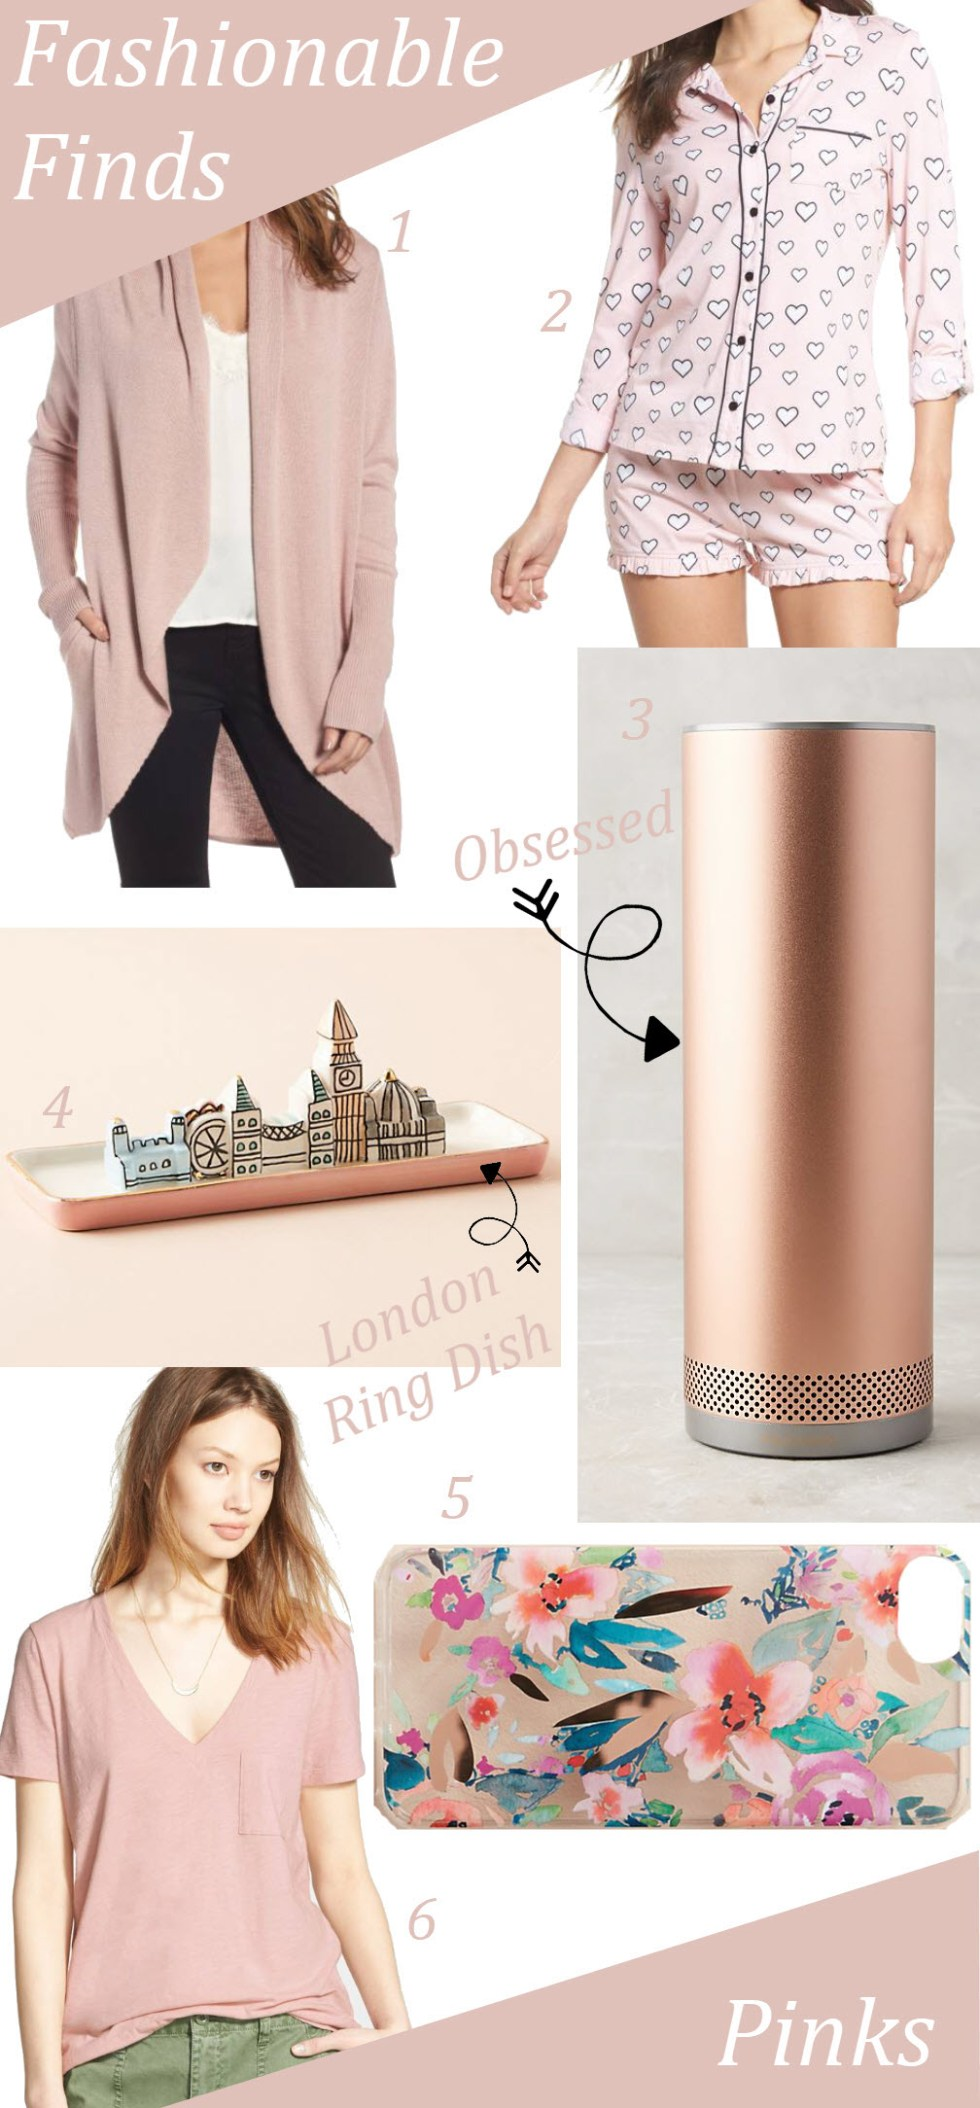 February Fashion Finds for Chic Valentine's Day Fashion for Women - Pinks